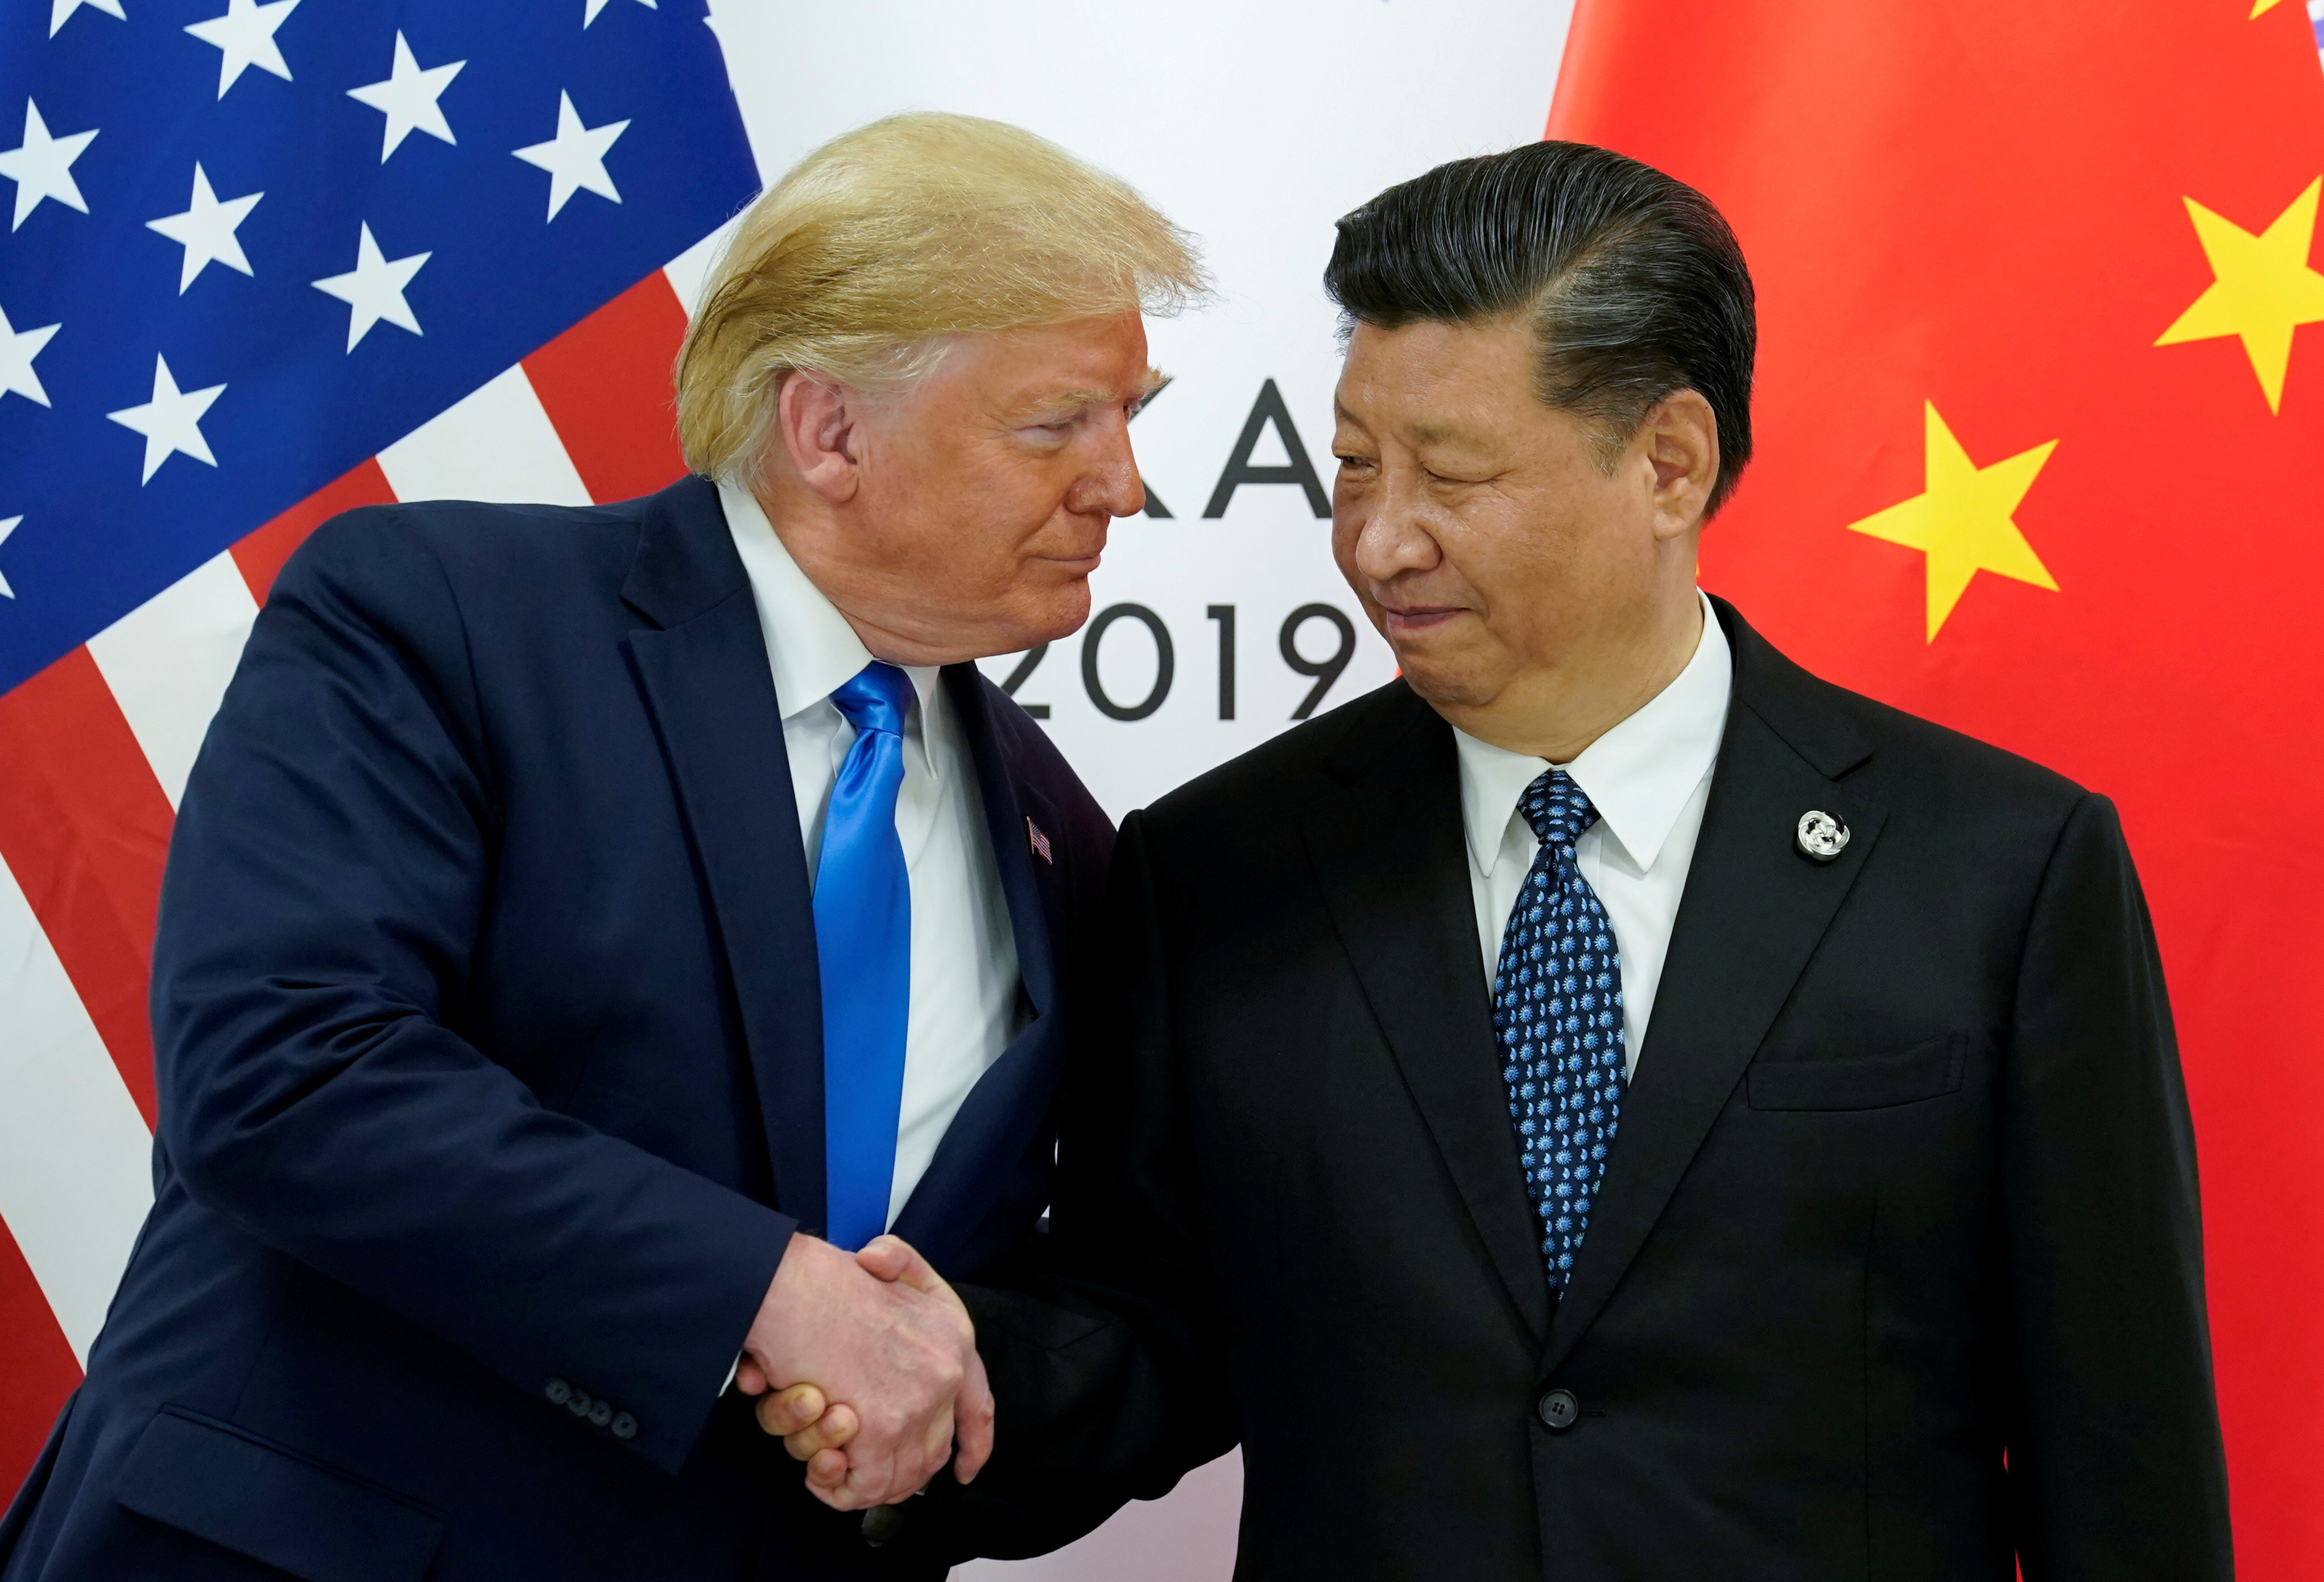 U.S. President Donald Trump meets with China's President Xi Jinping at the start of their bilateral meeting at the G20 leaders summit in Osaka, Japan, June 29, 2019. REUTERS/Kevin Lamarque     TPX IMAGES OF THE DAY - RC1D2FDA4690